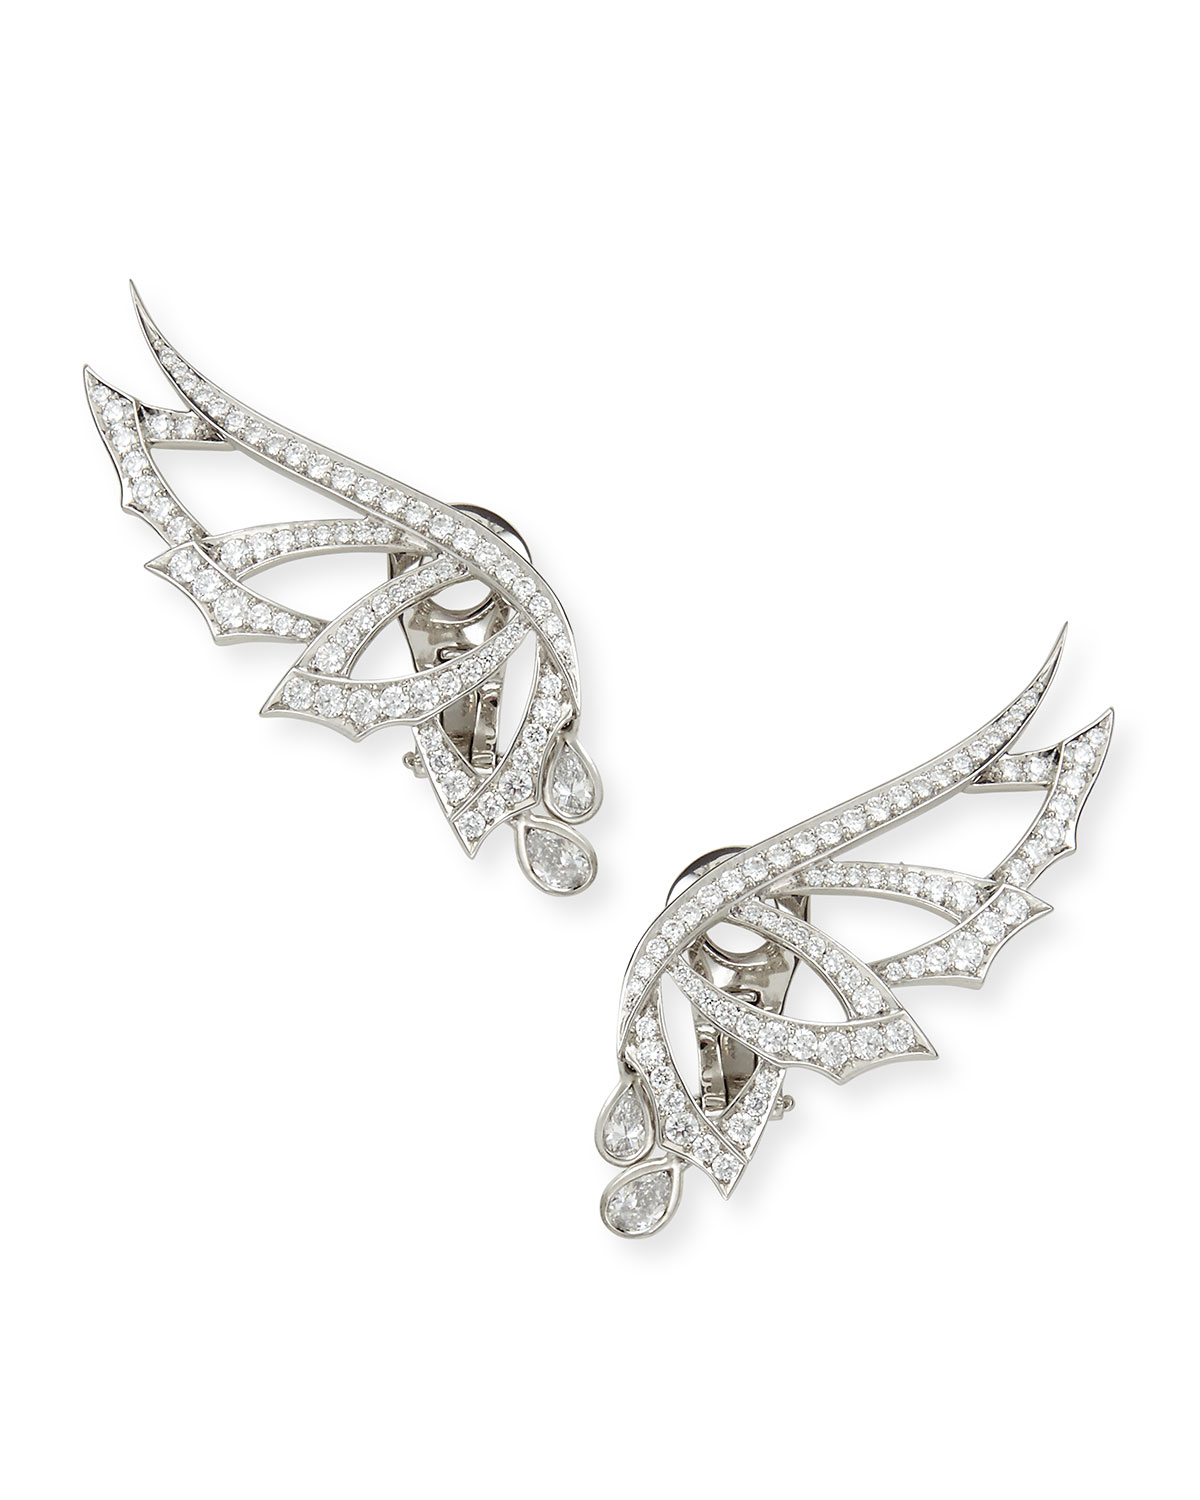 Stephen Webster Magnipheasant Pave Diamond Wing Earrings 2qEYXnsuu